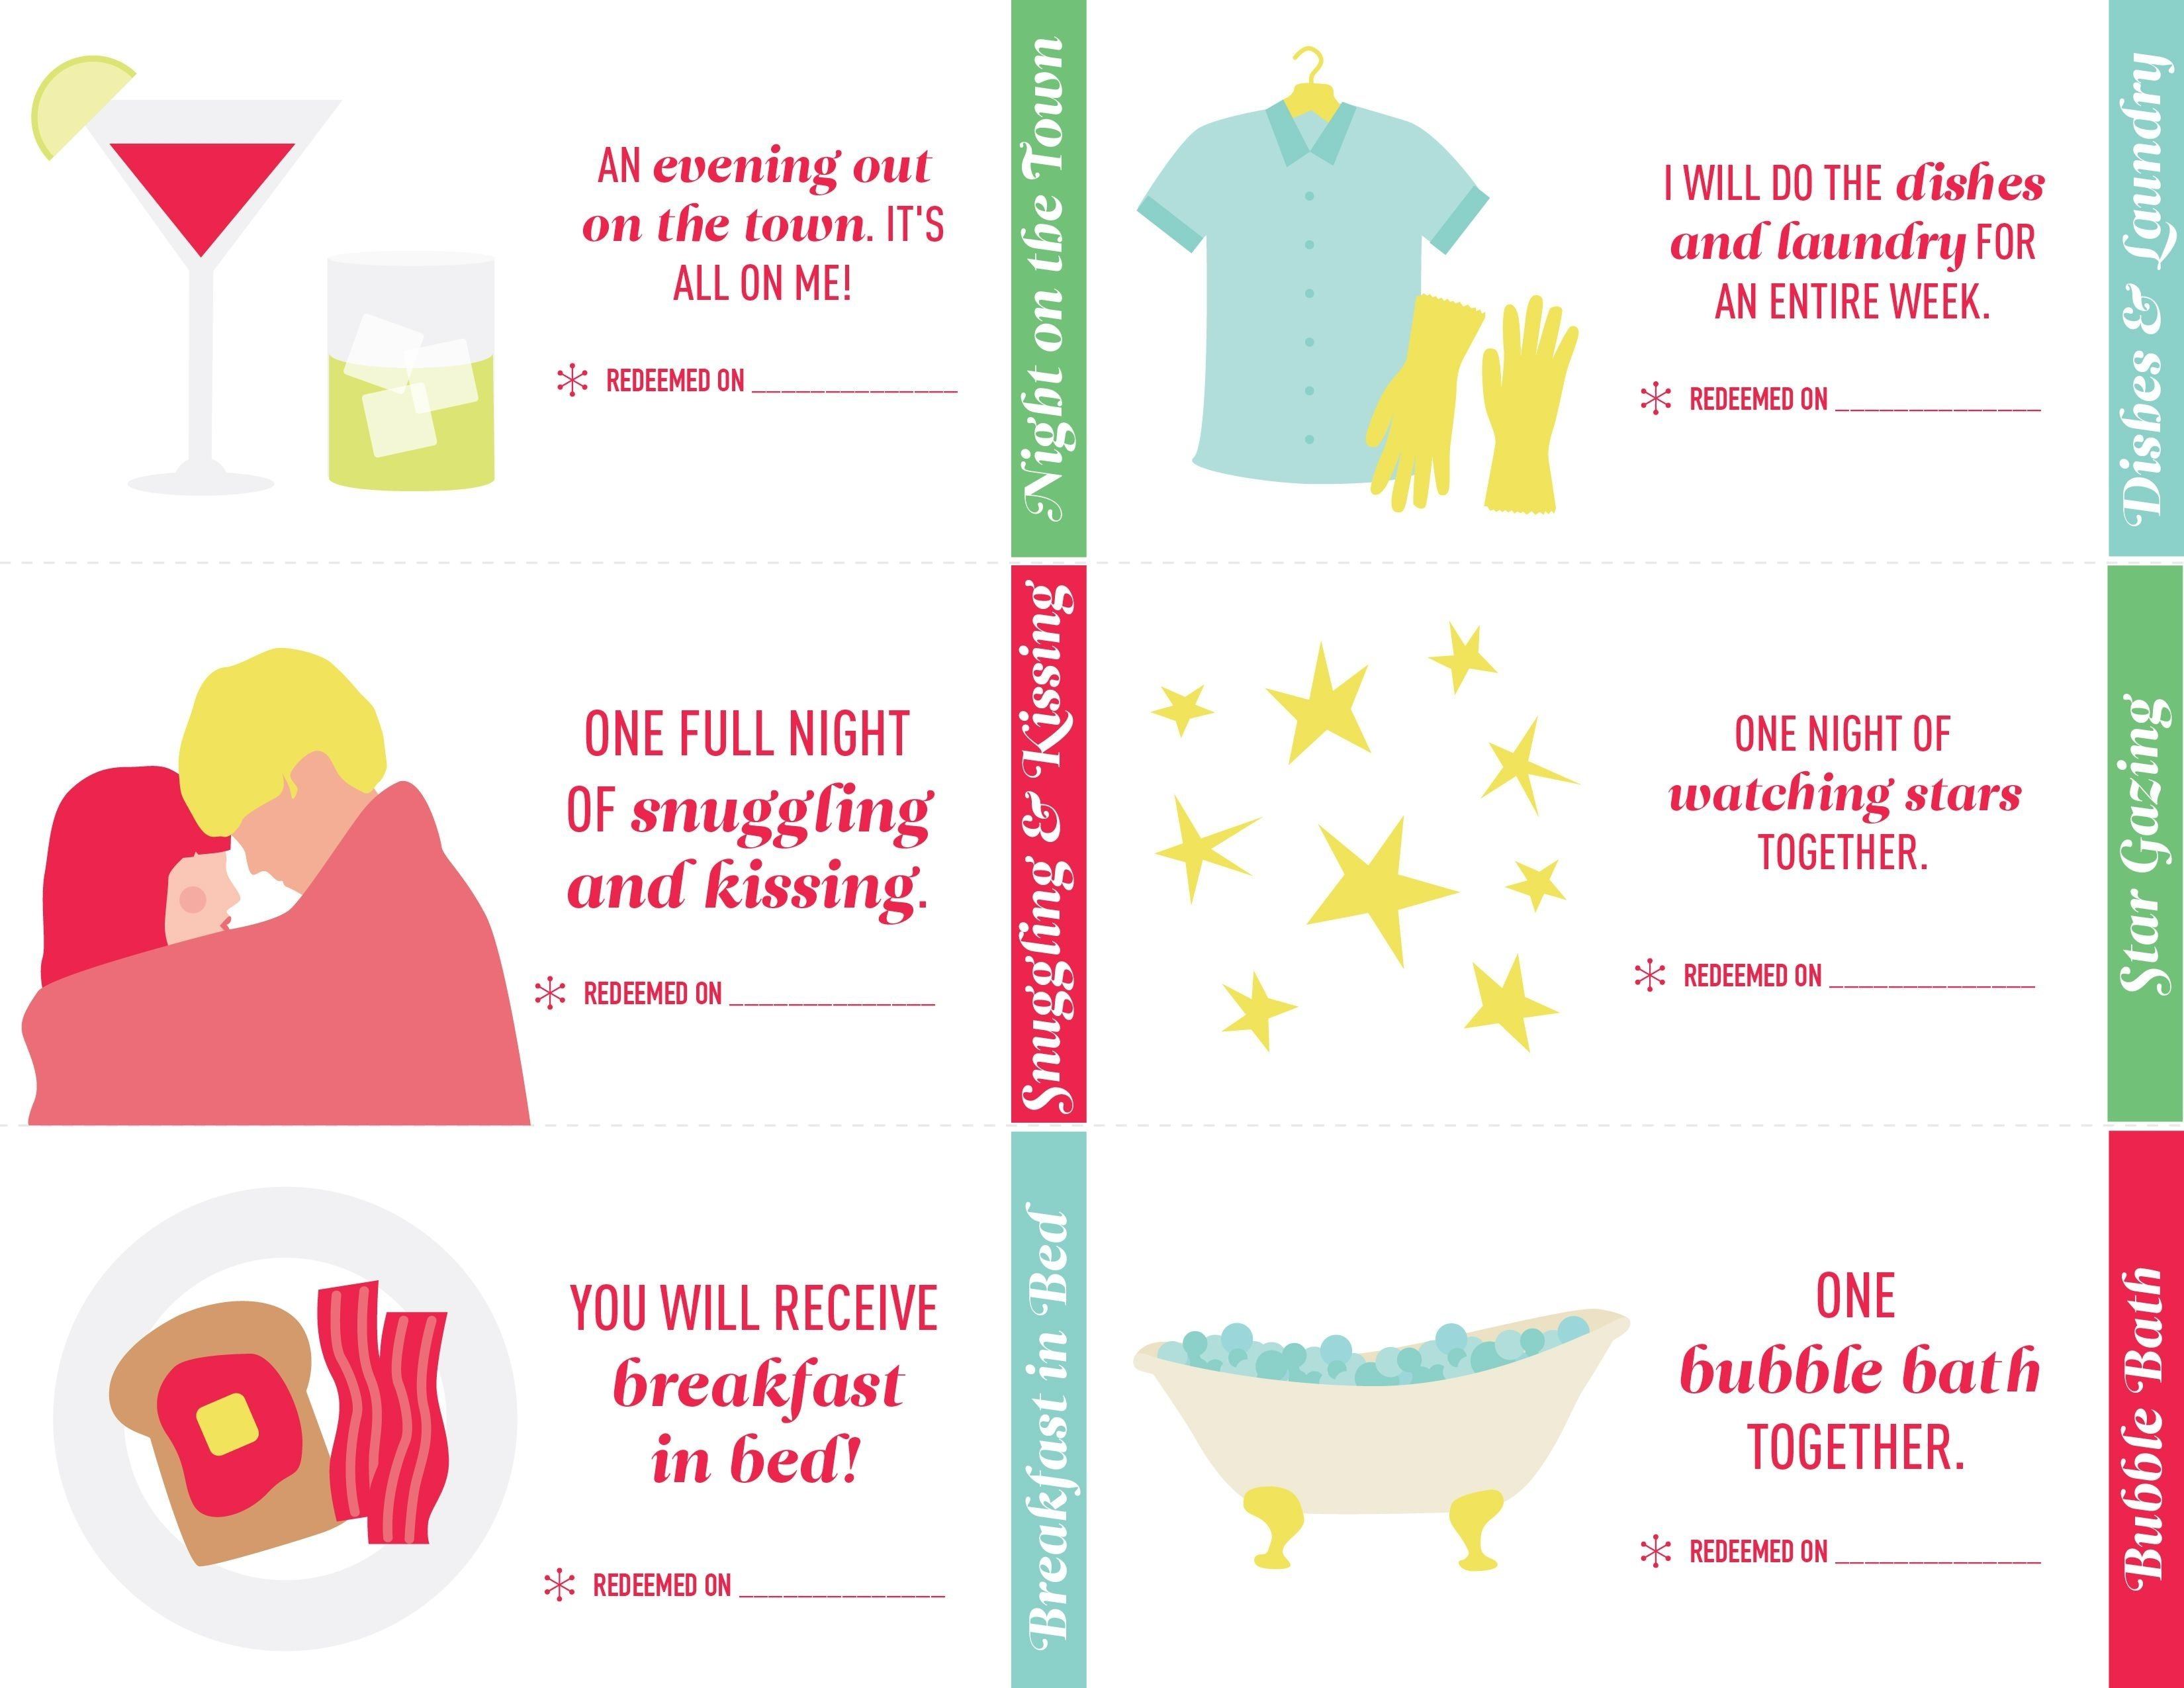 10 Fantastic Coupon Book For Husband Ideas these are love coupons youll be happy to fulfill 1 2021